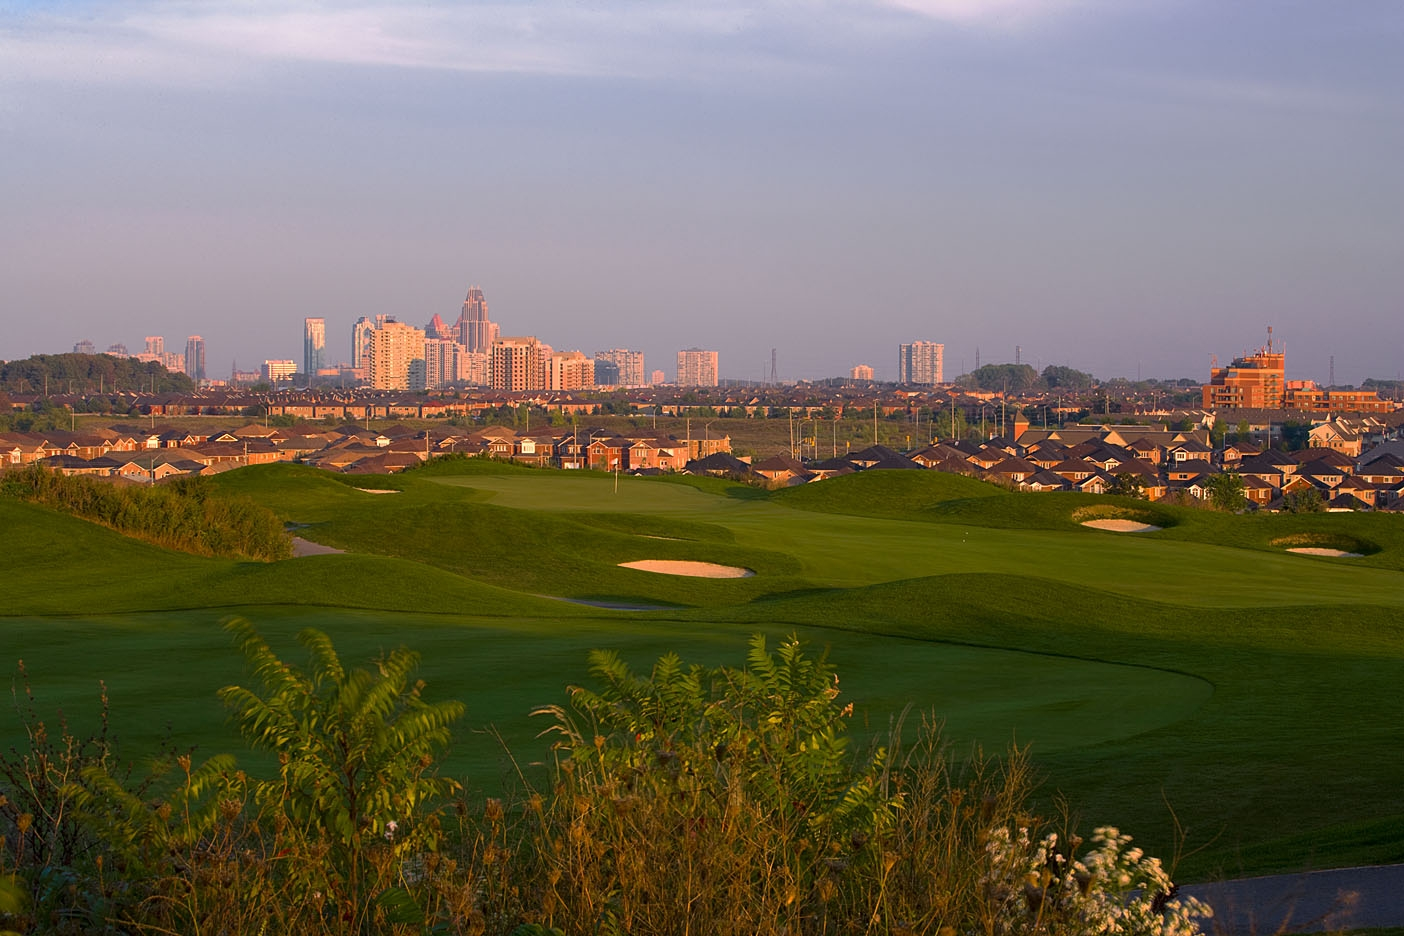 Braeben Golf course gives you a full view 360 view of Mississauga.